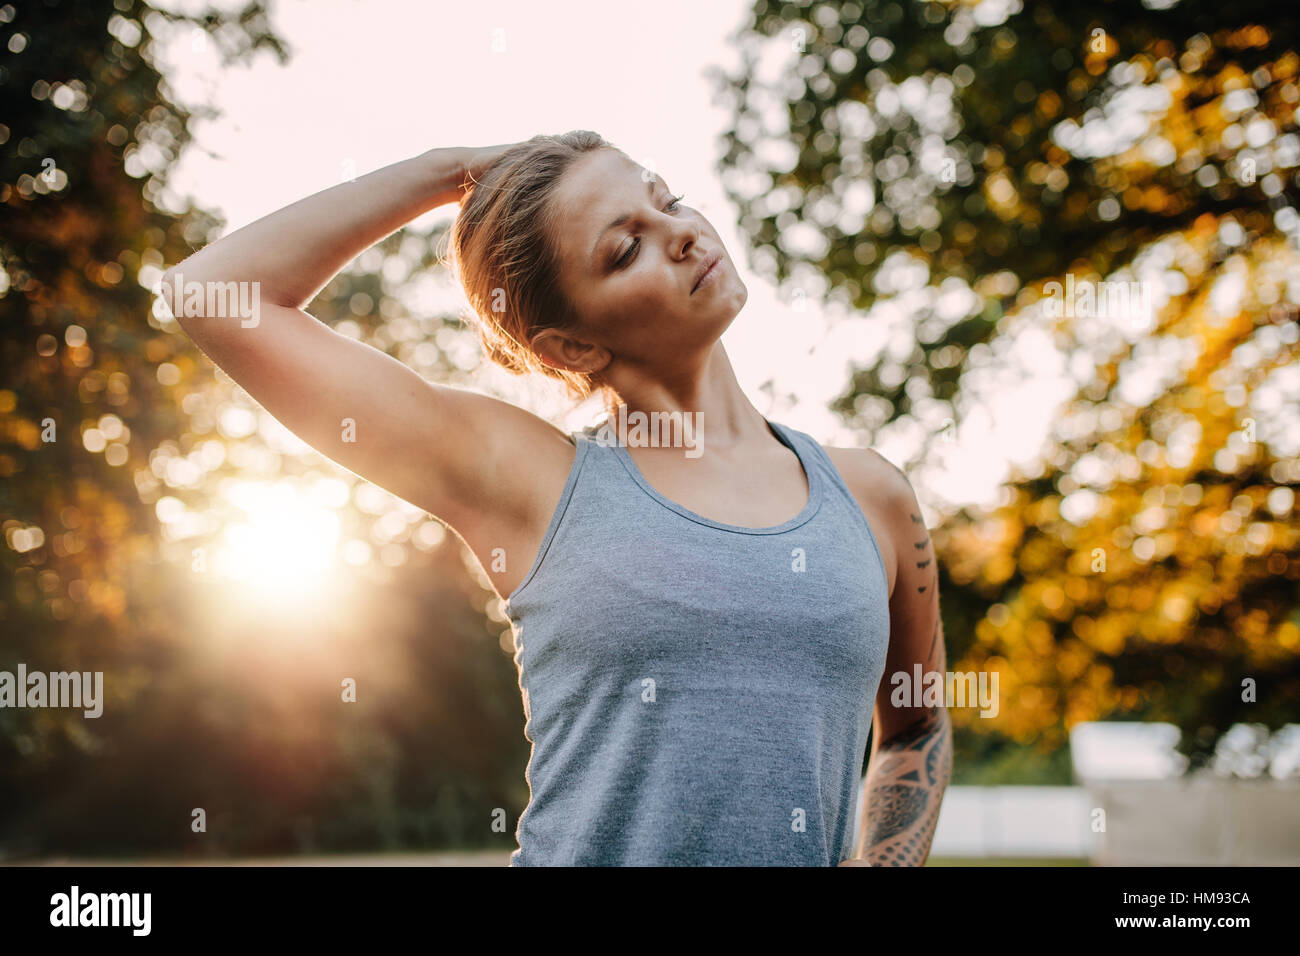 Portrait of healthy young woman stretching her neck outdoors. Caucasian fitness model warming up in park. - Stock Image